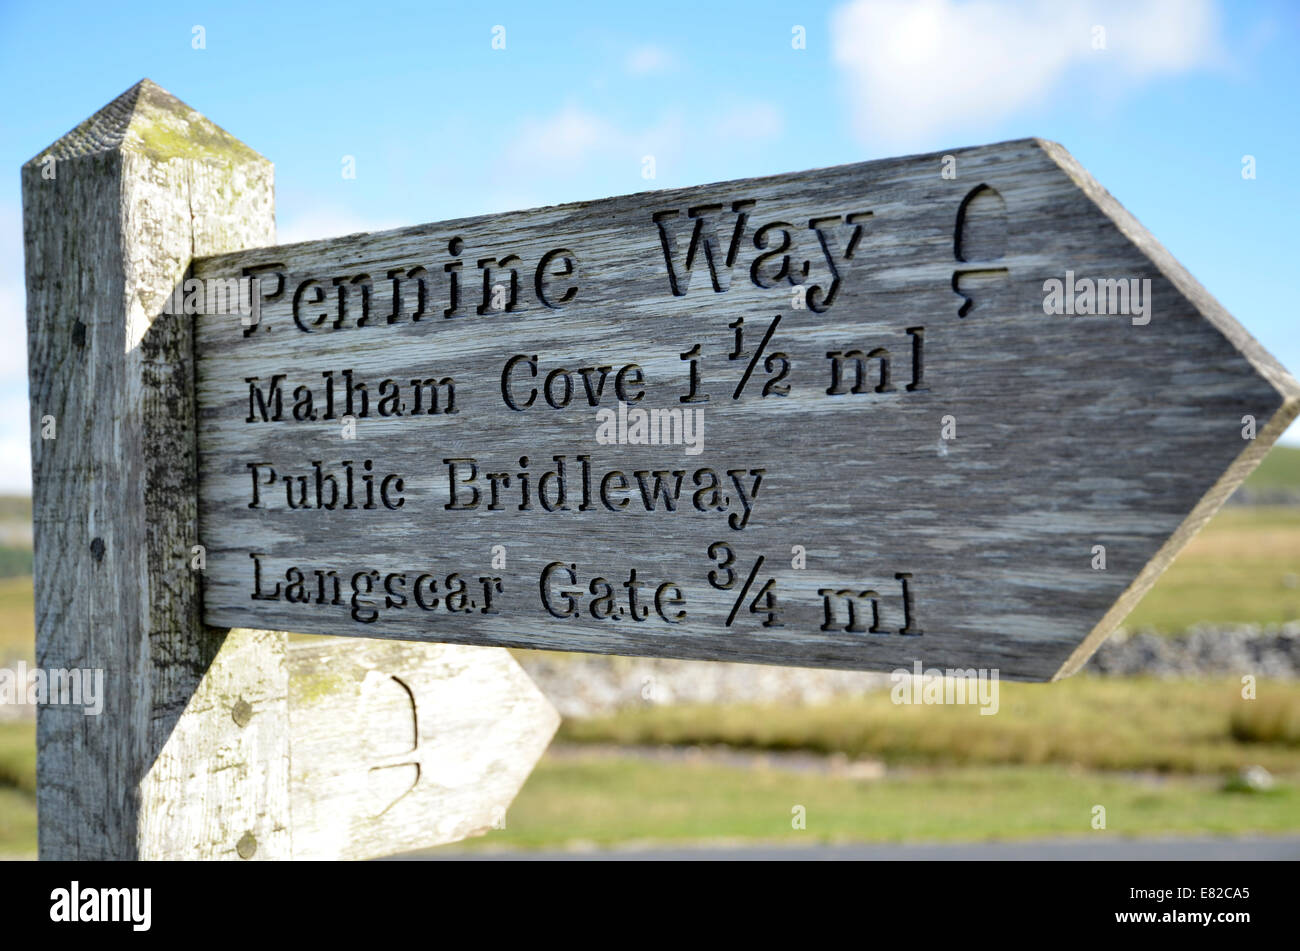 A Pennine Way sign at Malham in the Yorkshire Dales national park. - Stock Image